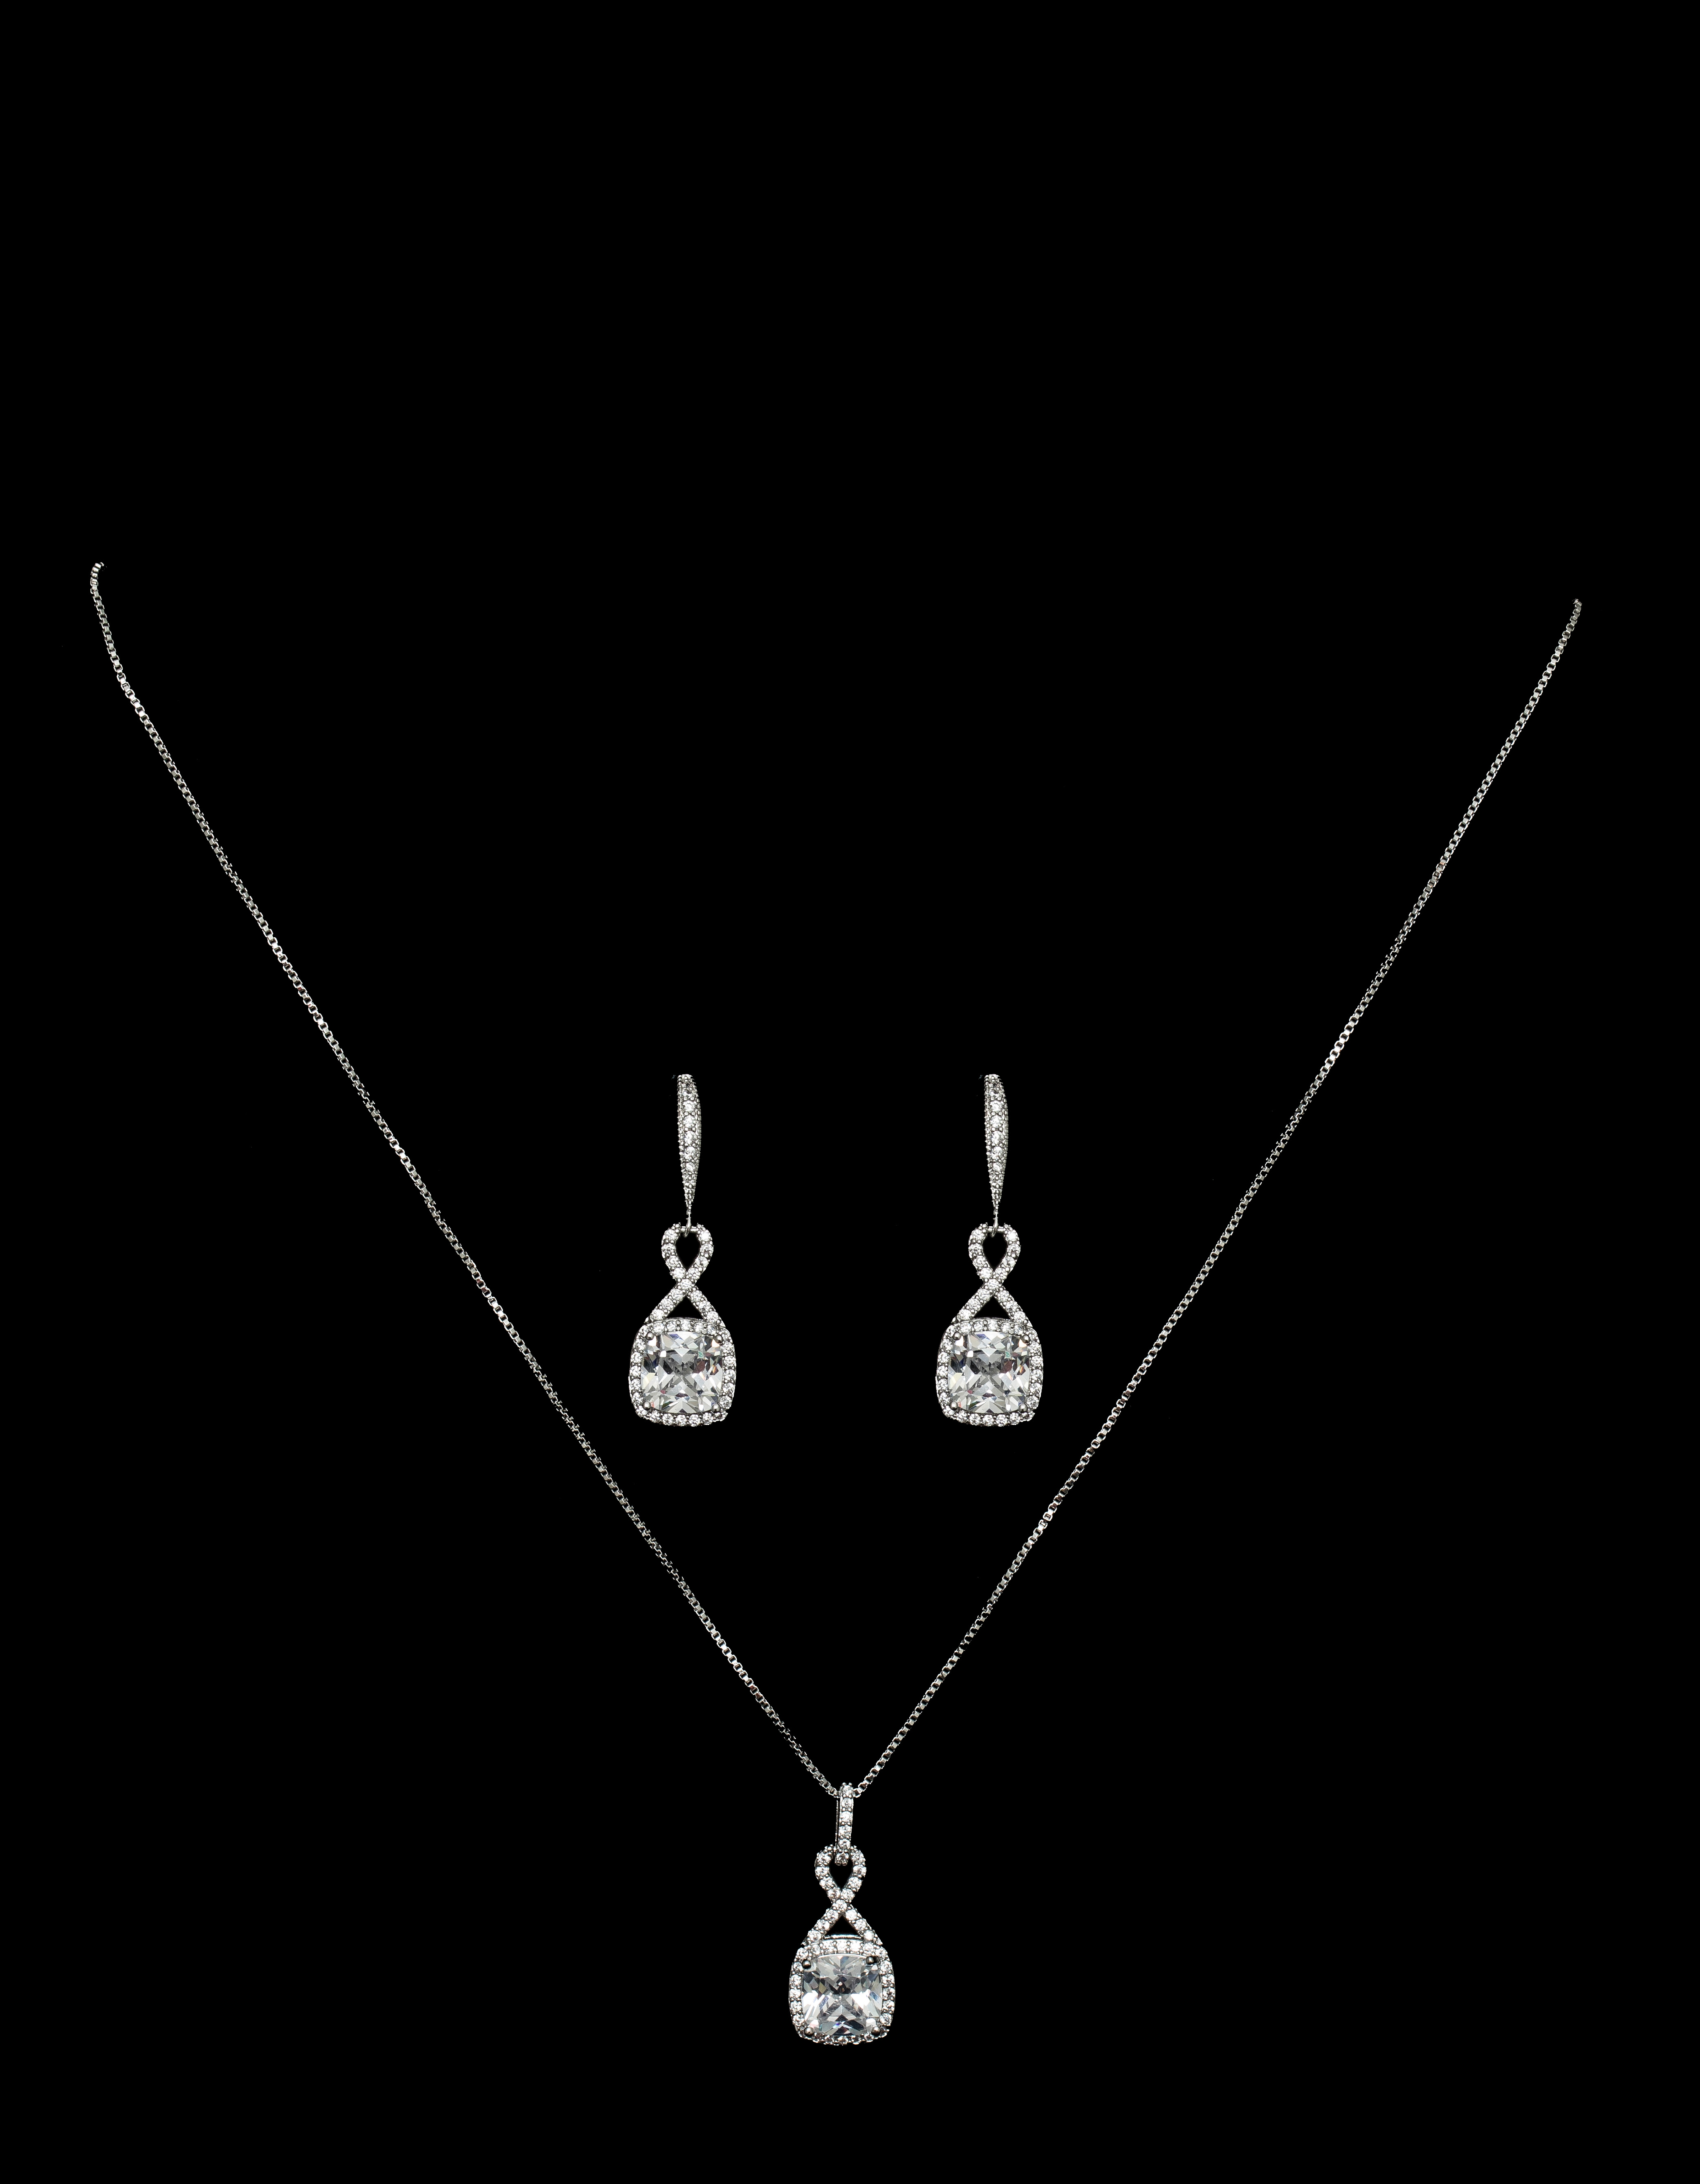 Bridal Classics Necklace Sets ME-1233